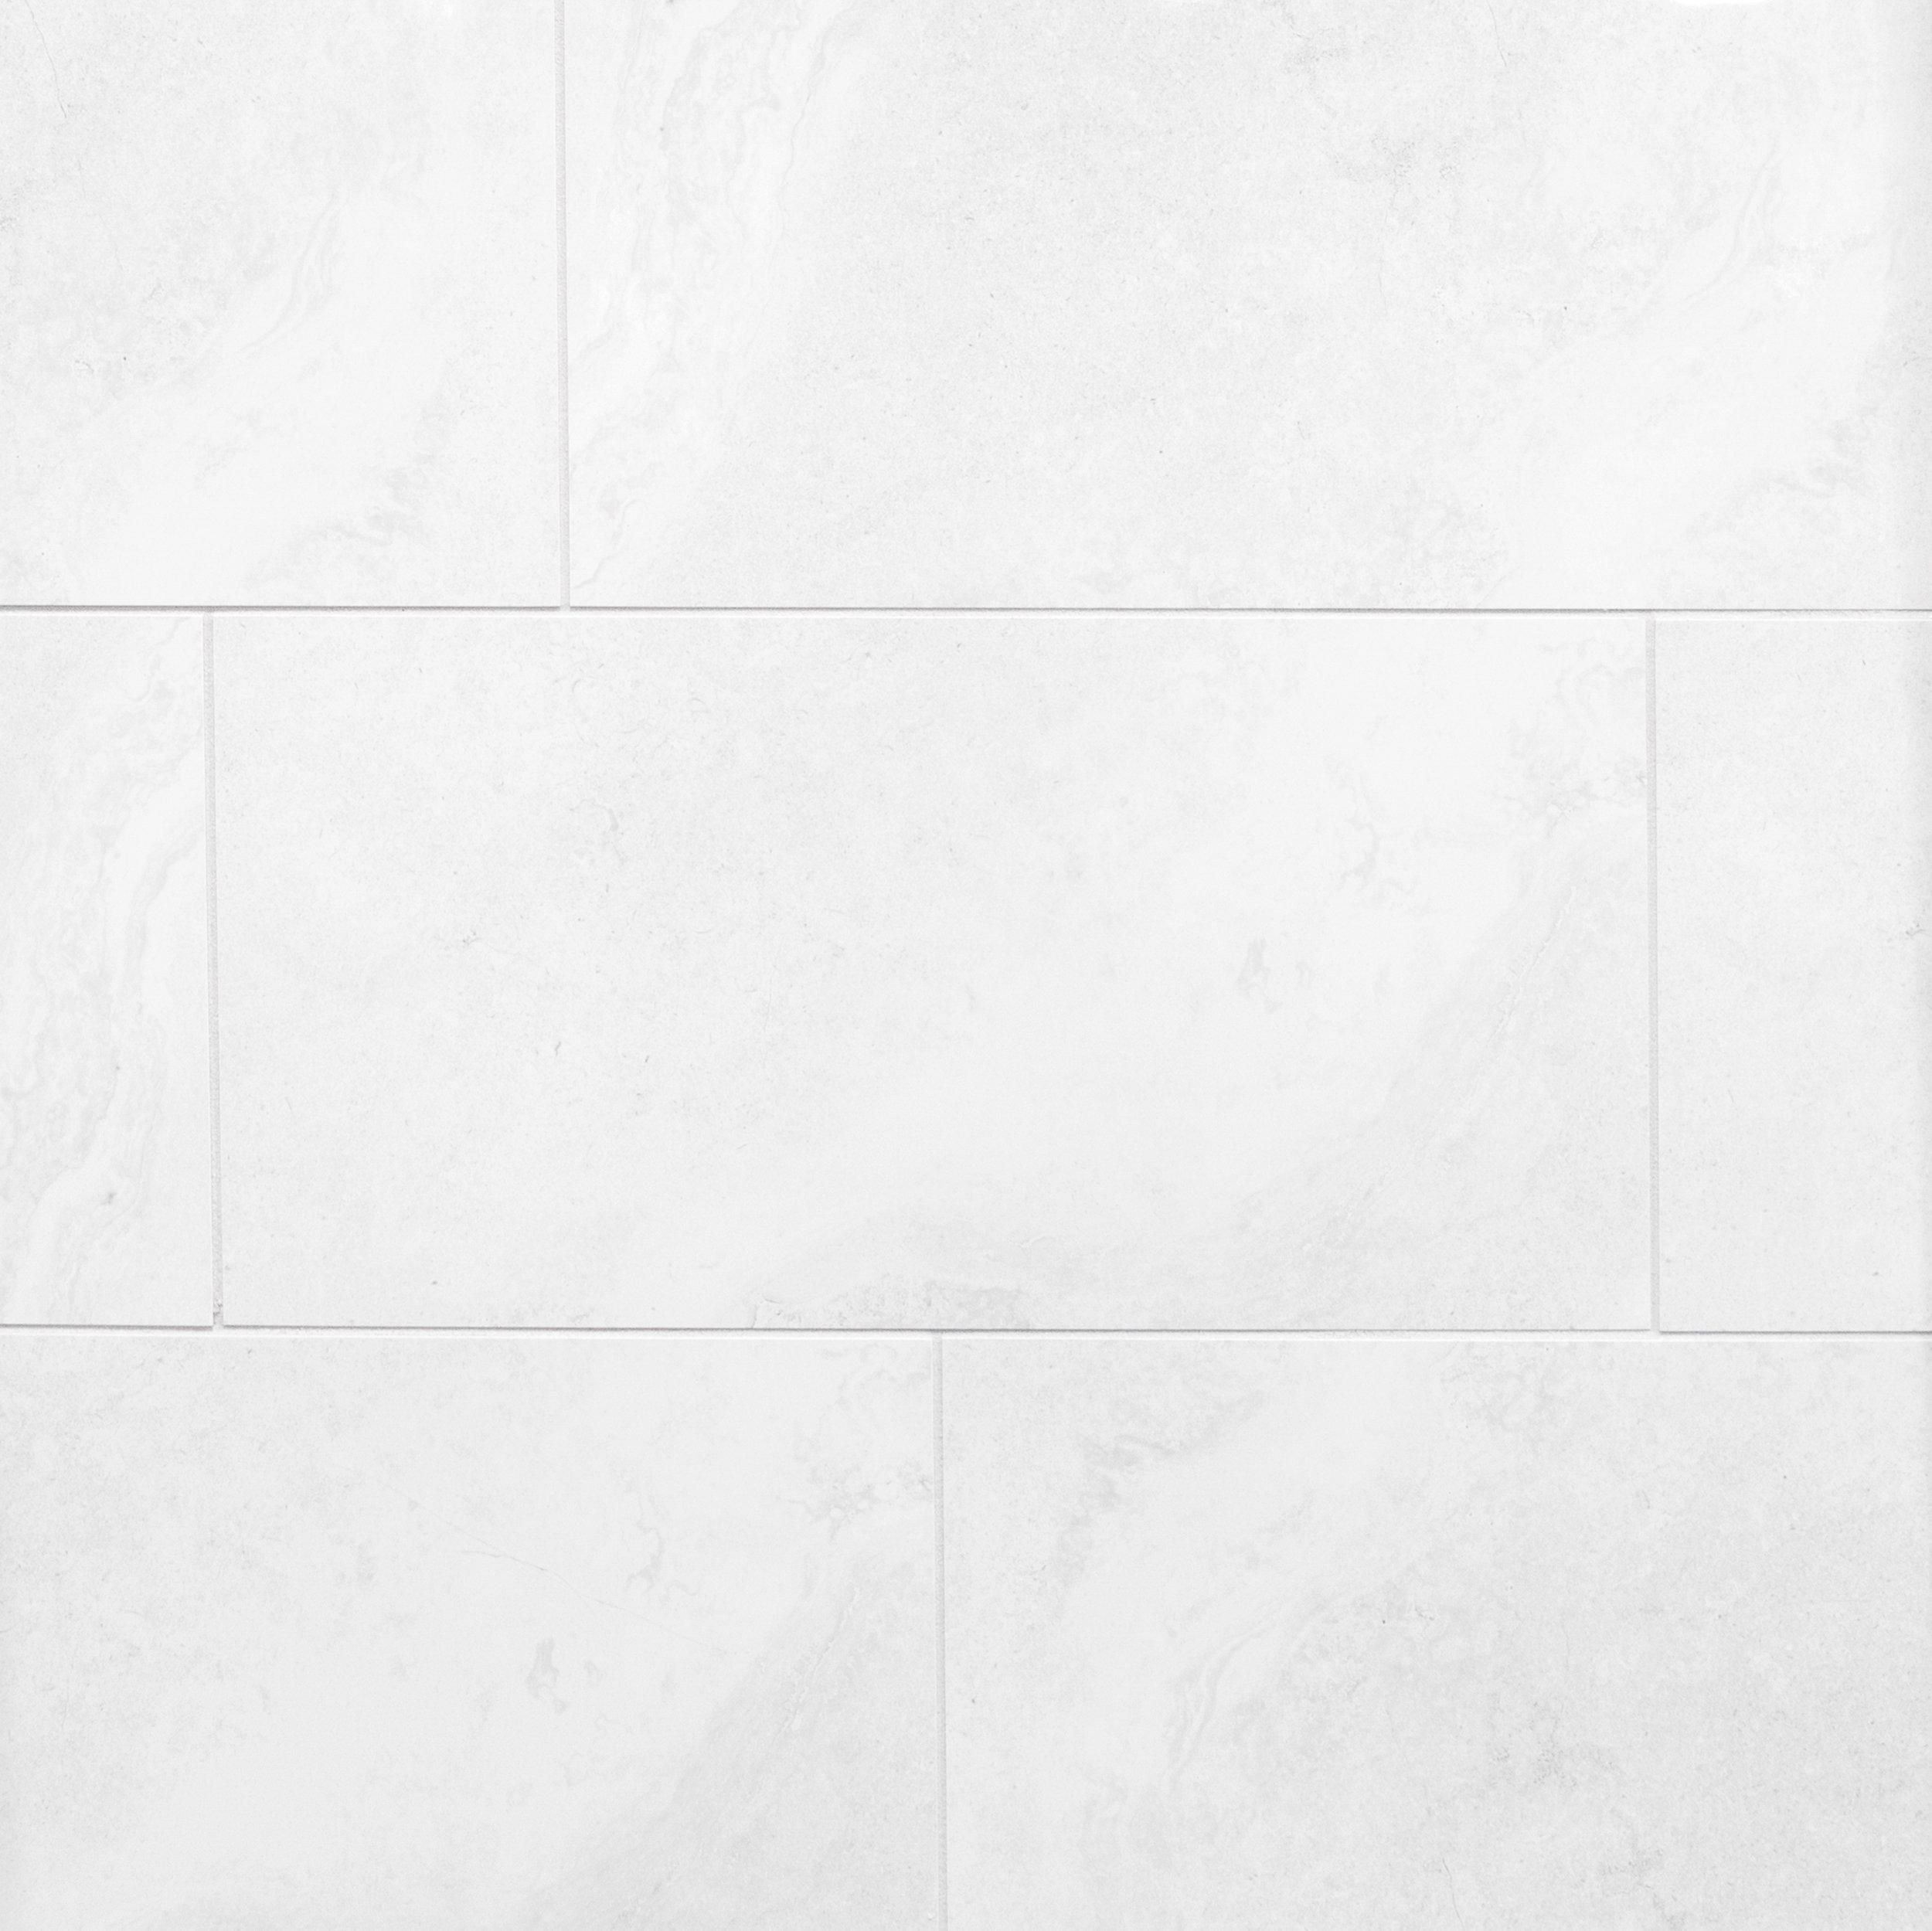 Kodiak White Polished Porcelain Tile White Polished Porcelain Tiles Polished Porcelain Tiles White Porcelain Tile